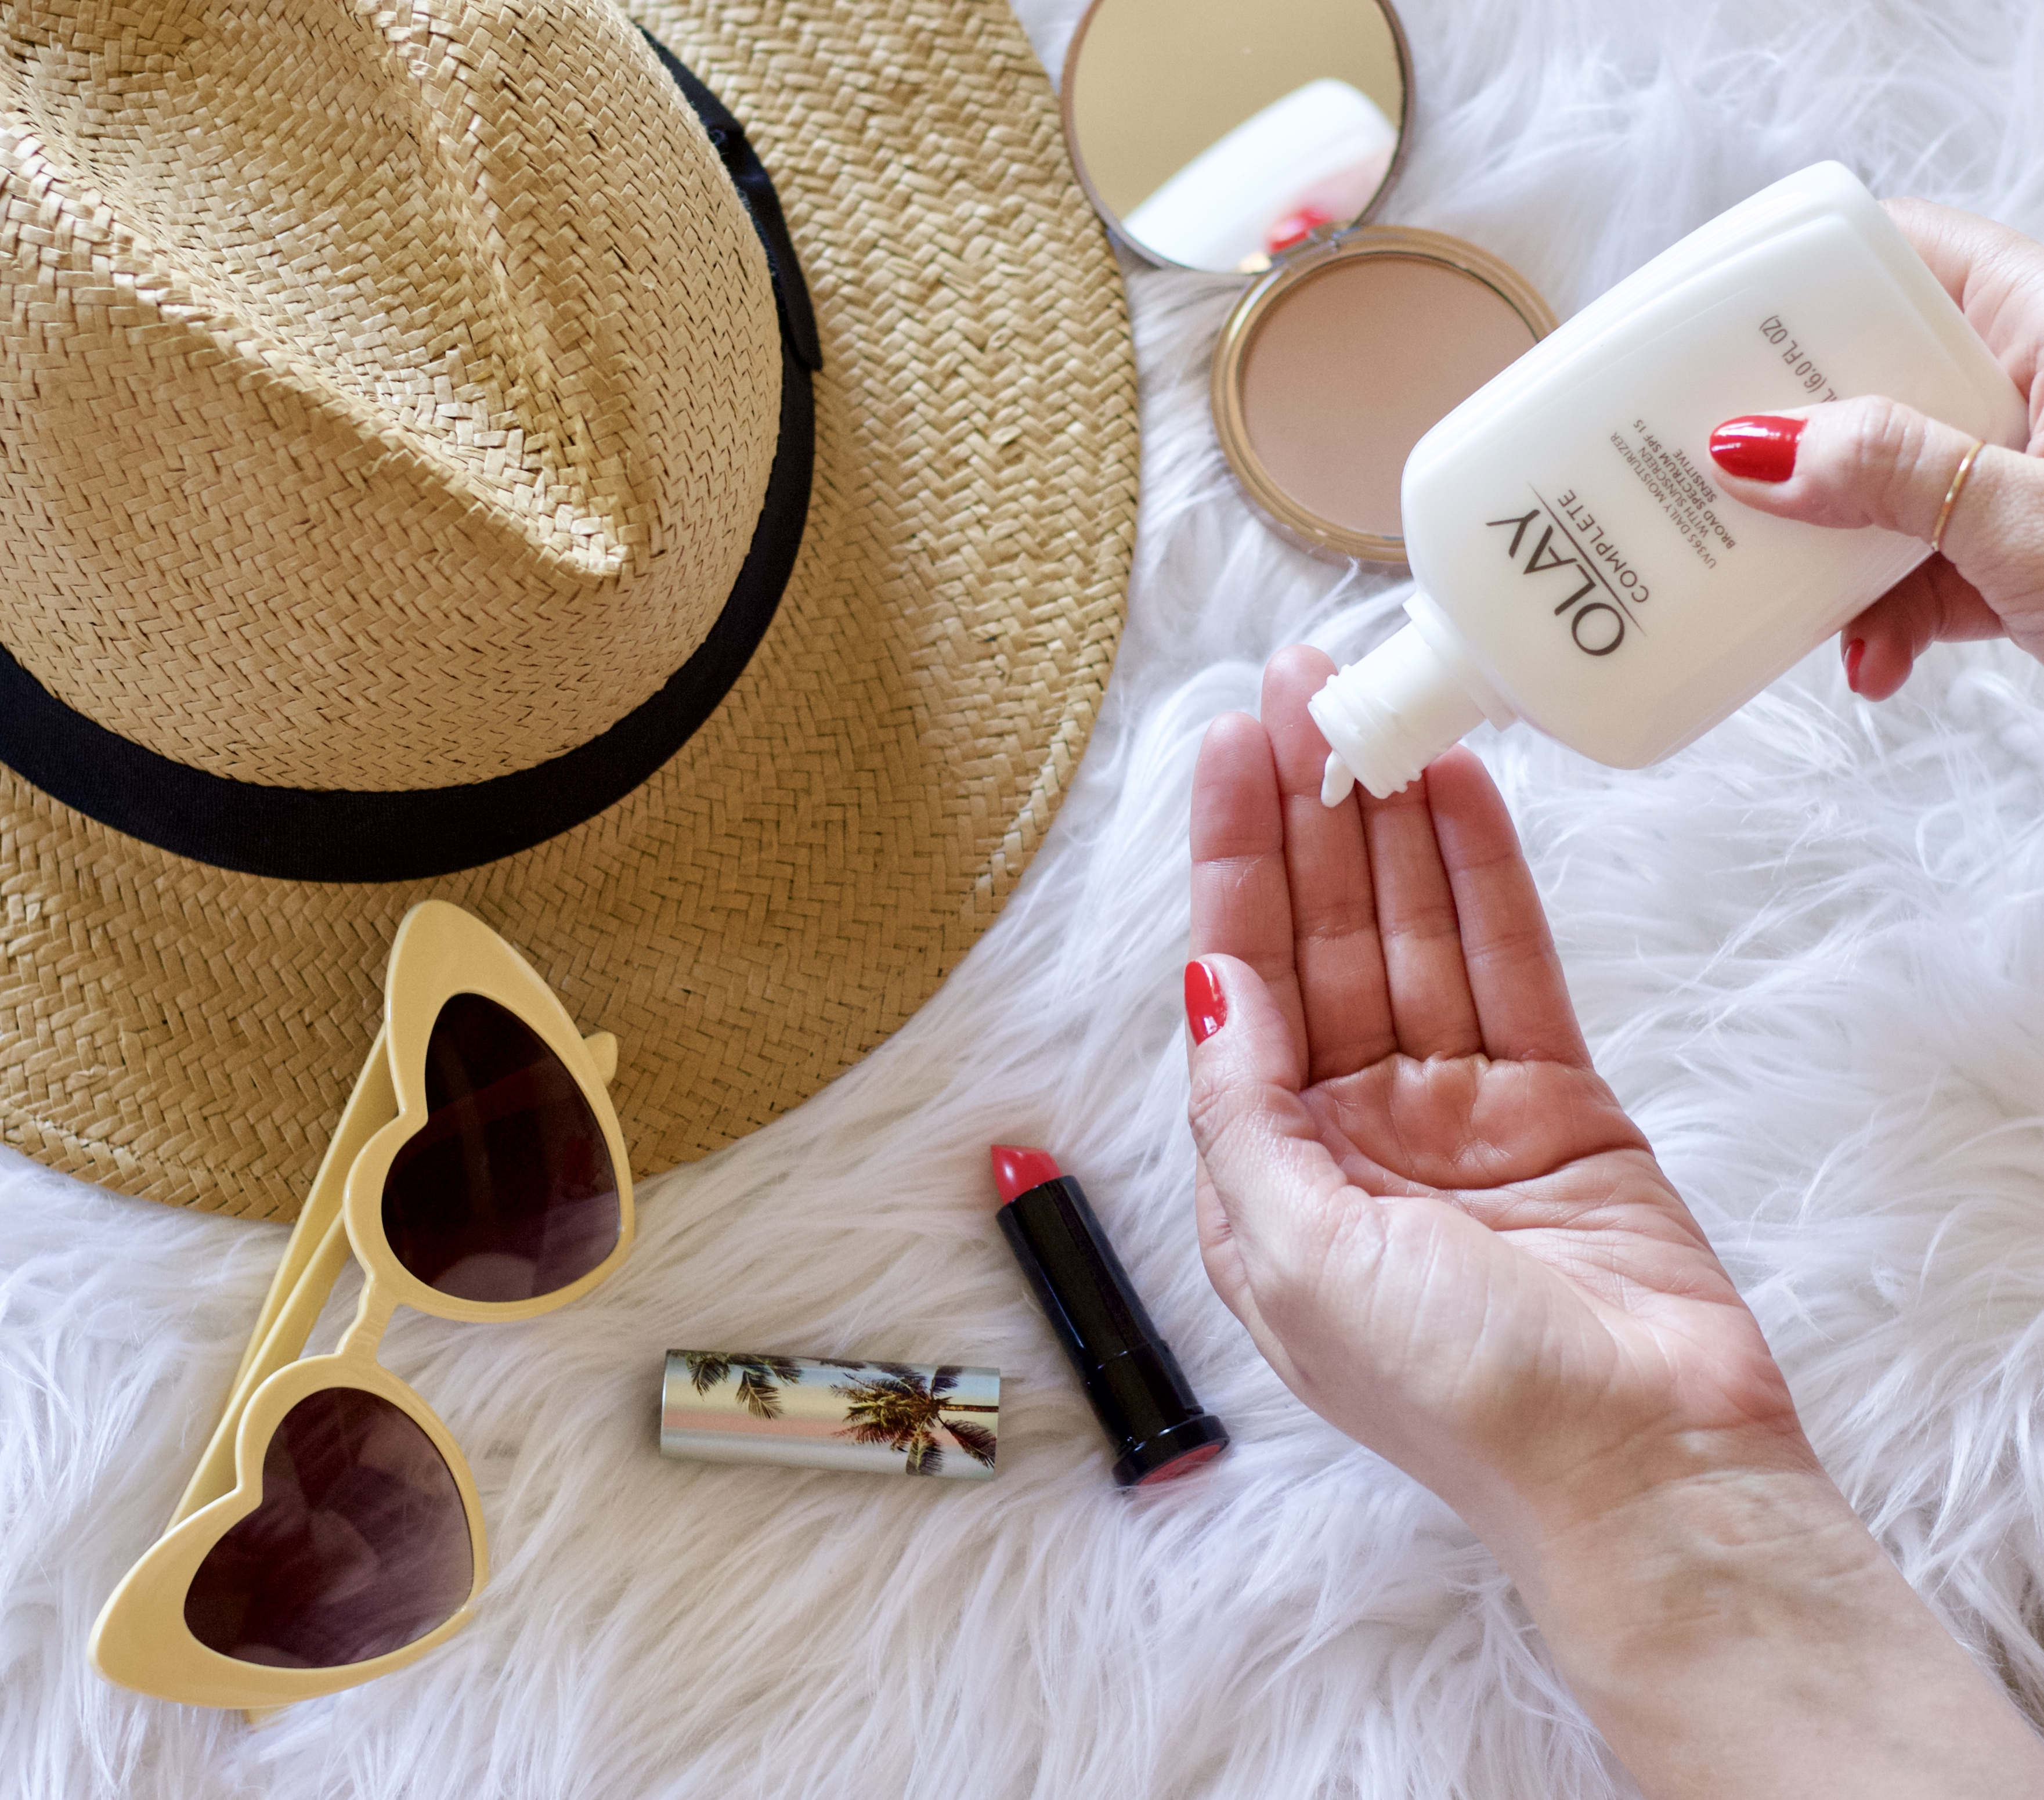 protect your skin for summer olay moisturizer #sunprotection #summerskincare #skincarefavorites